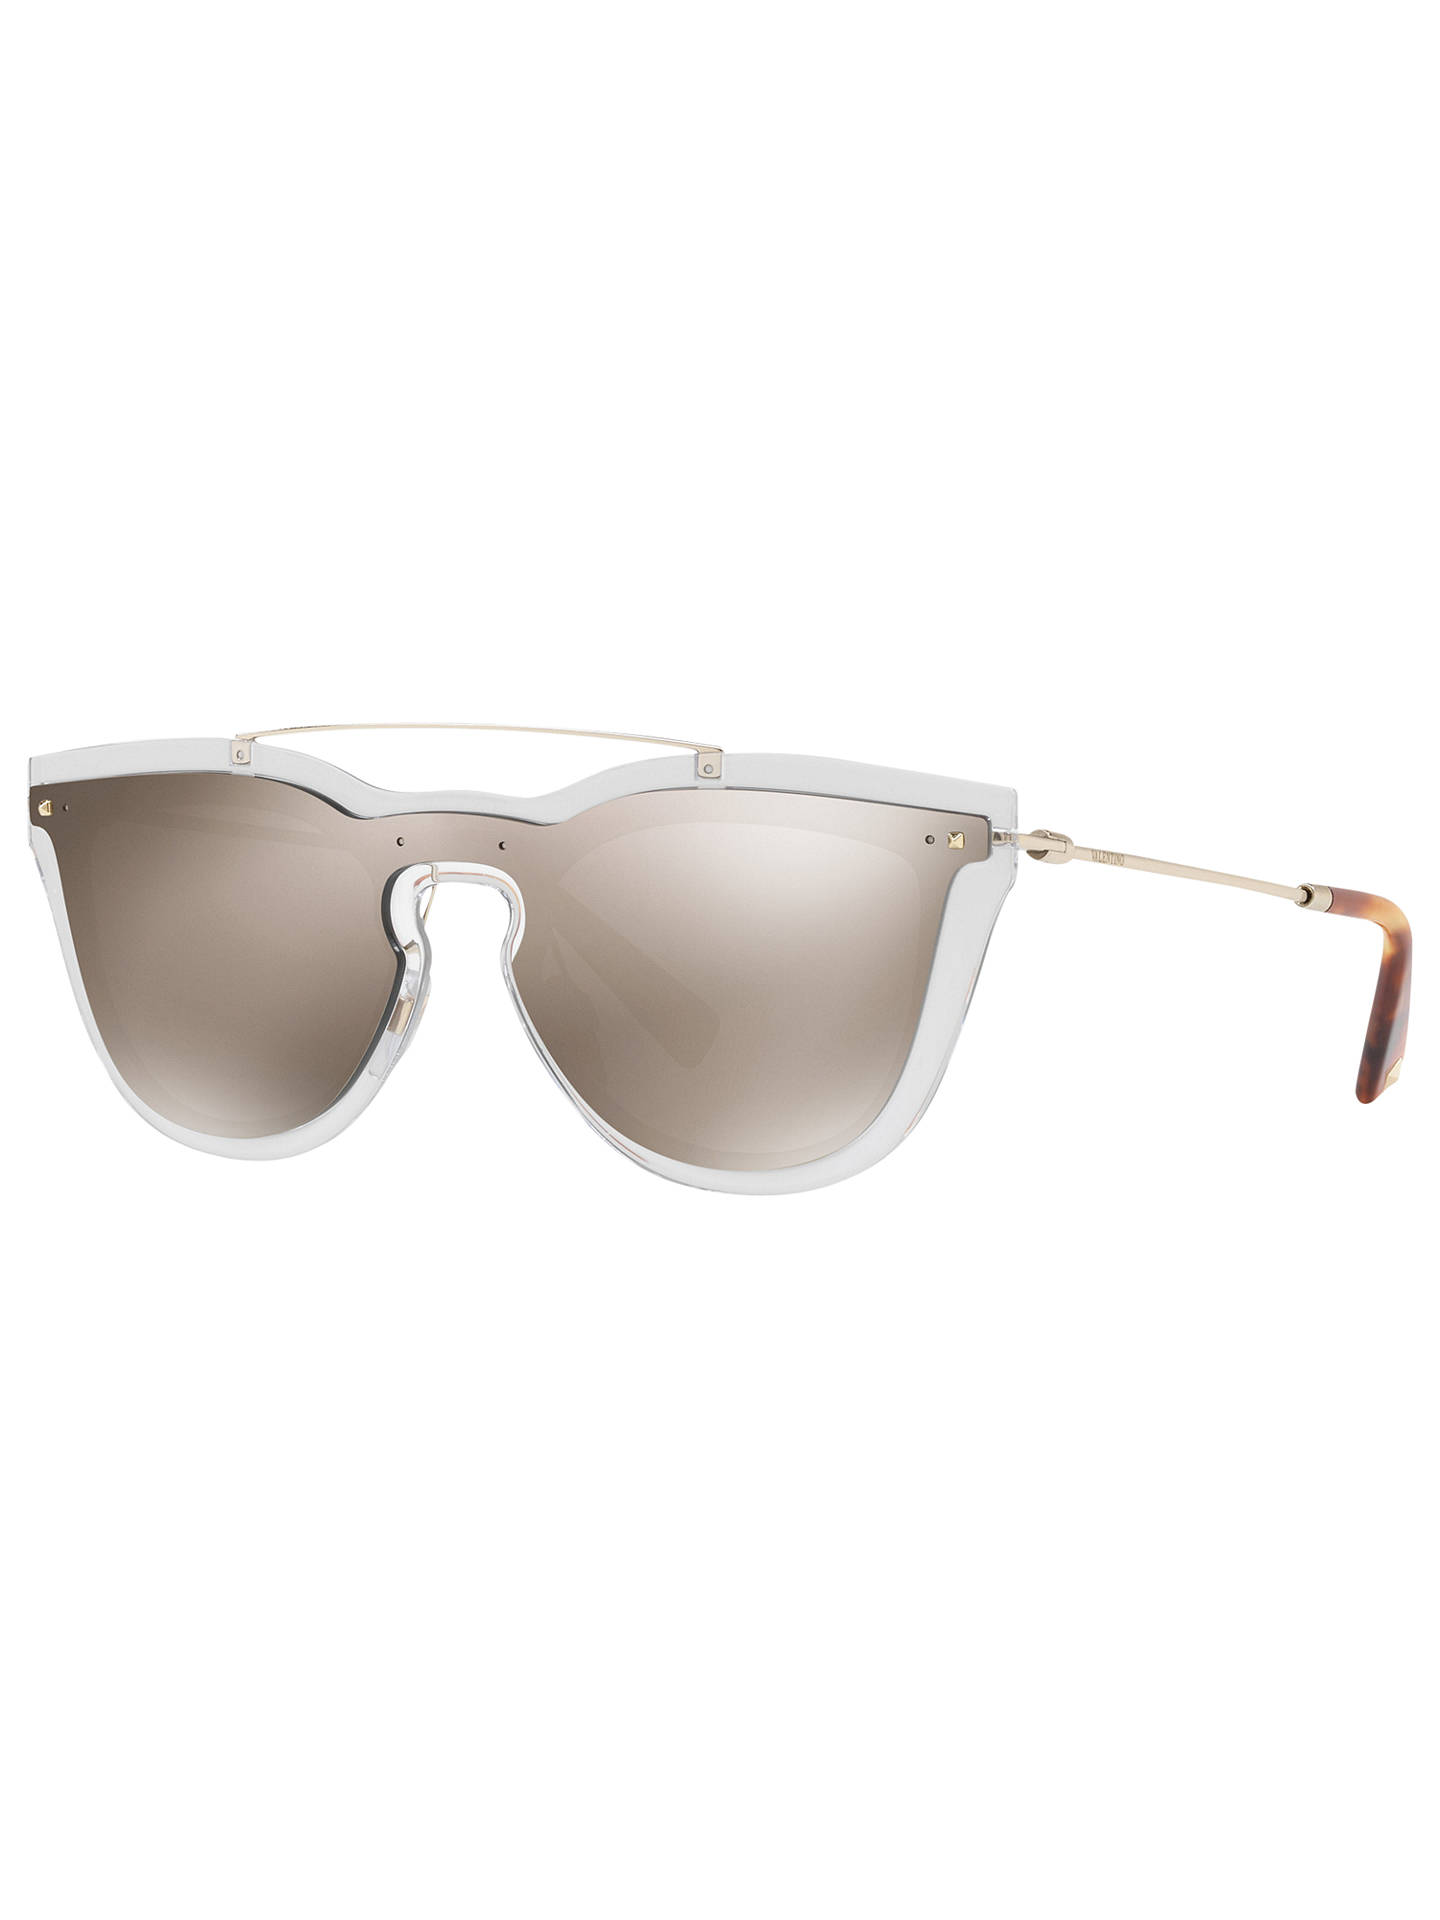 43b42243bcb Valentino VA4008 Oval Sunglasses at John Lewis   Partners